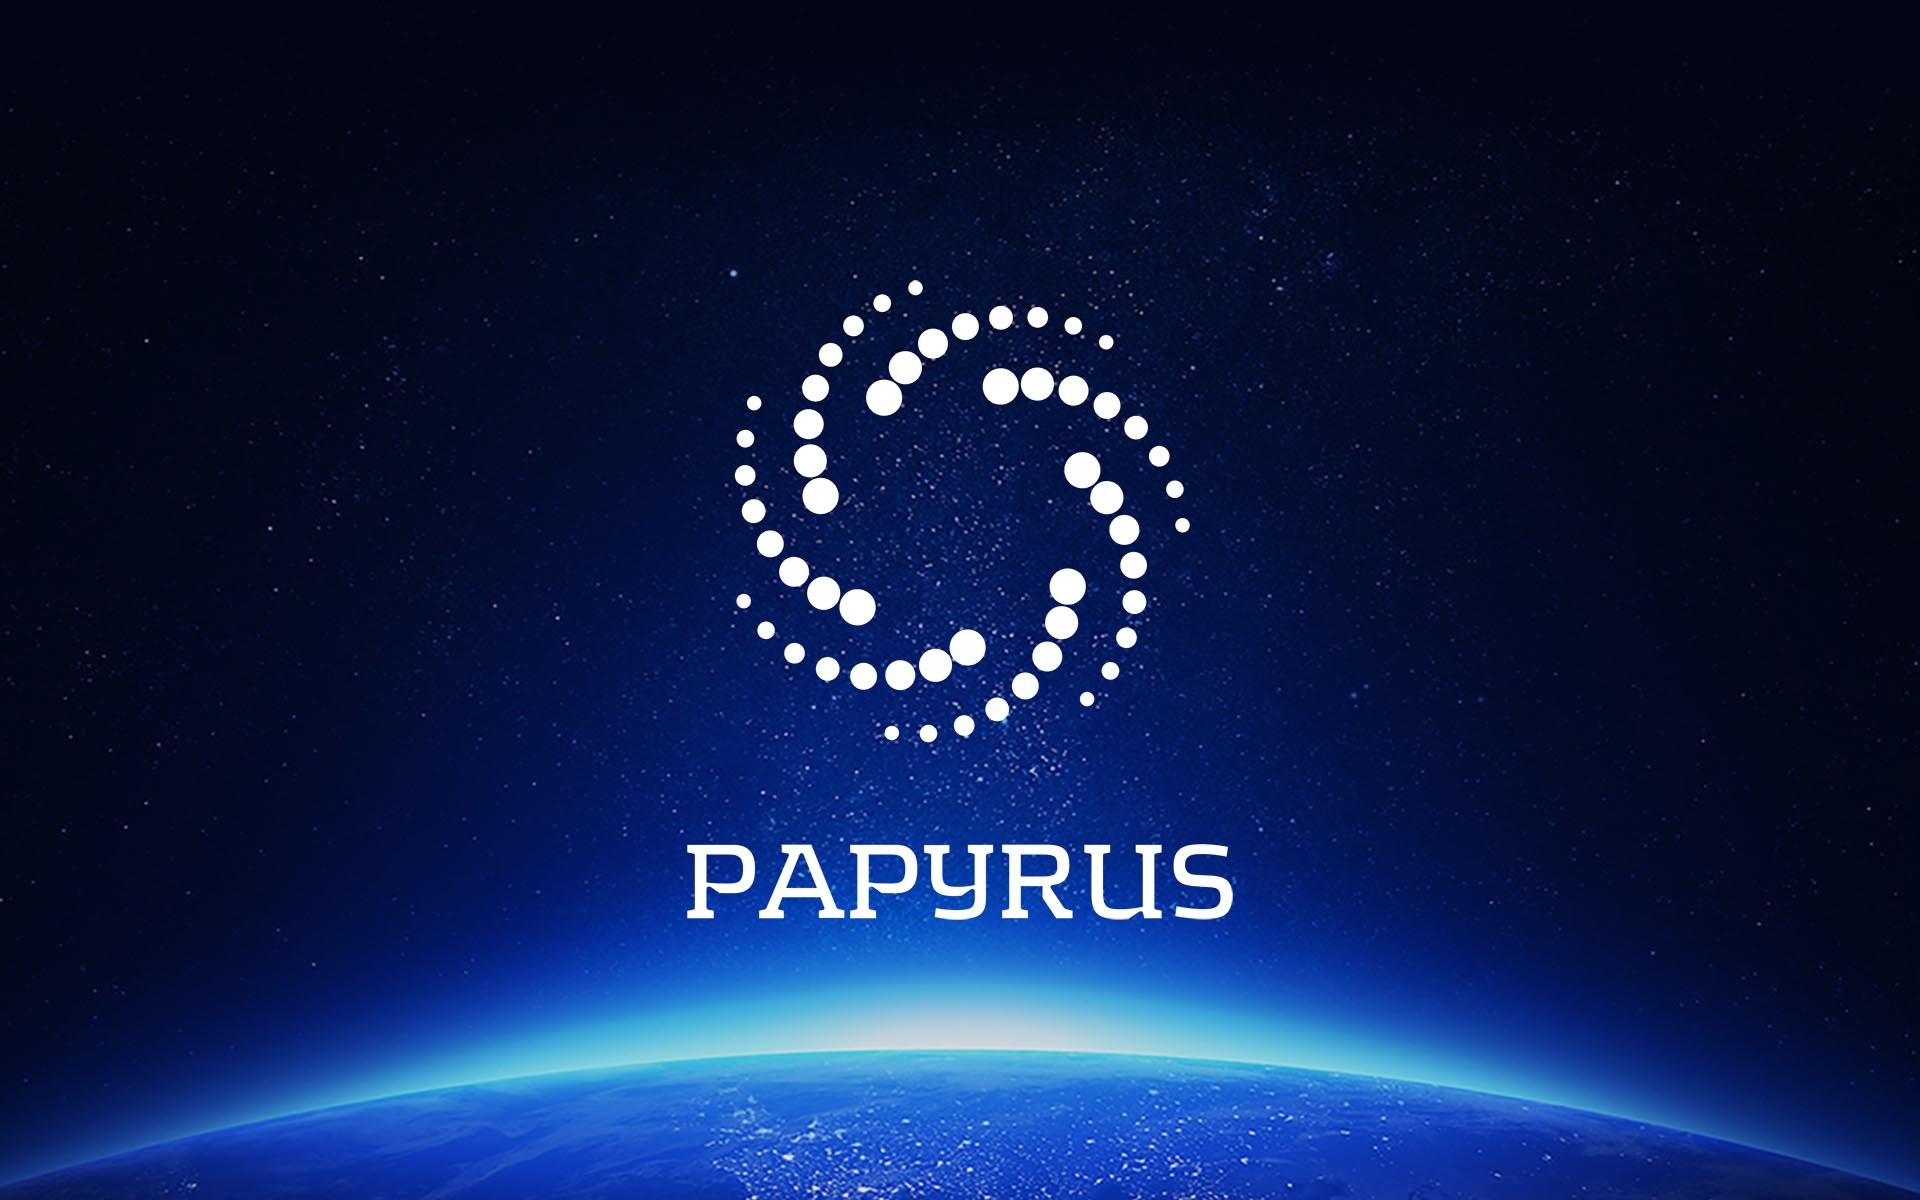 Decentralized Advertising Ecosystem Papyrus Launches Token Sale on October 12, Announces Strategic Partnership with Airpush, Bancor, WINGS, and BitClave, and Presents World-Class Advisors